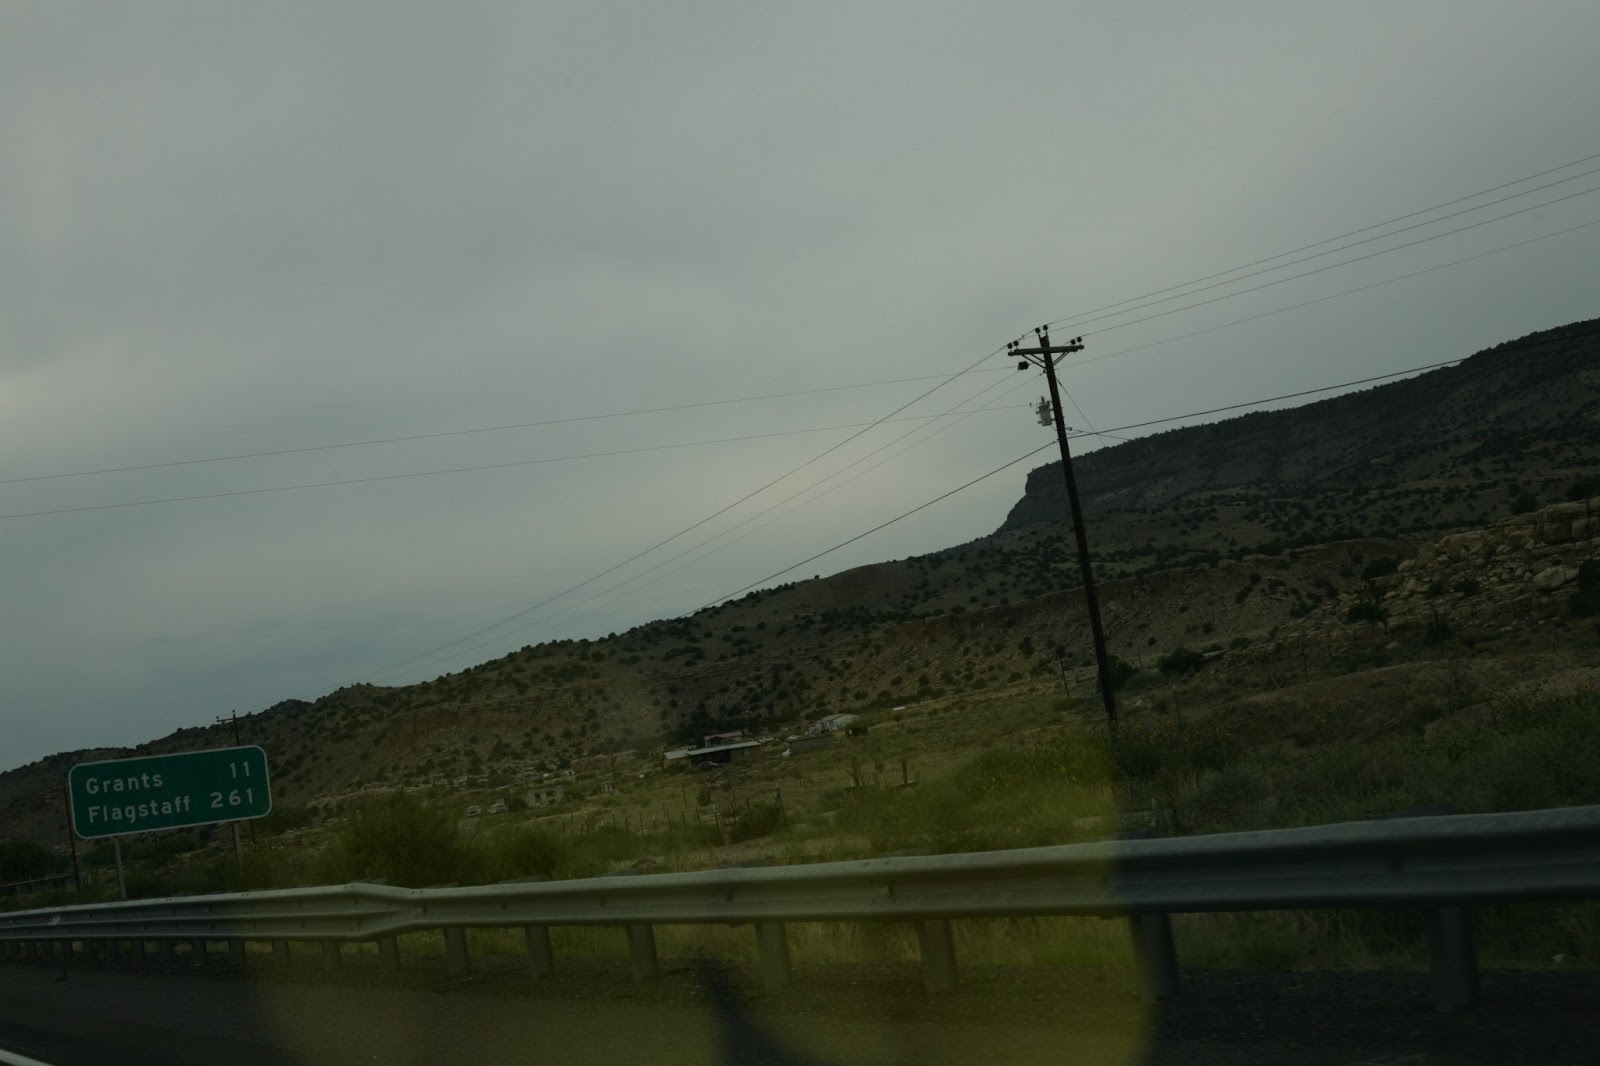 Driving to Flagstaff